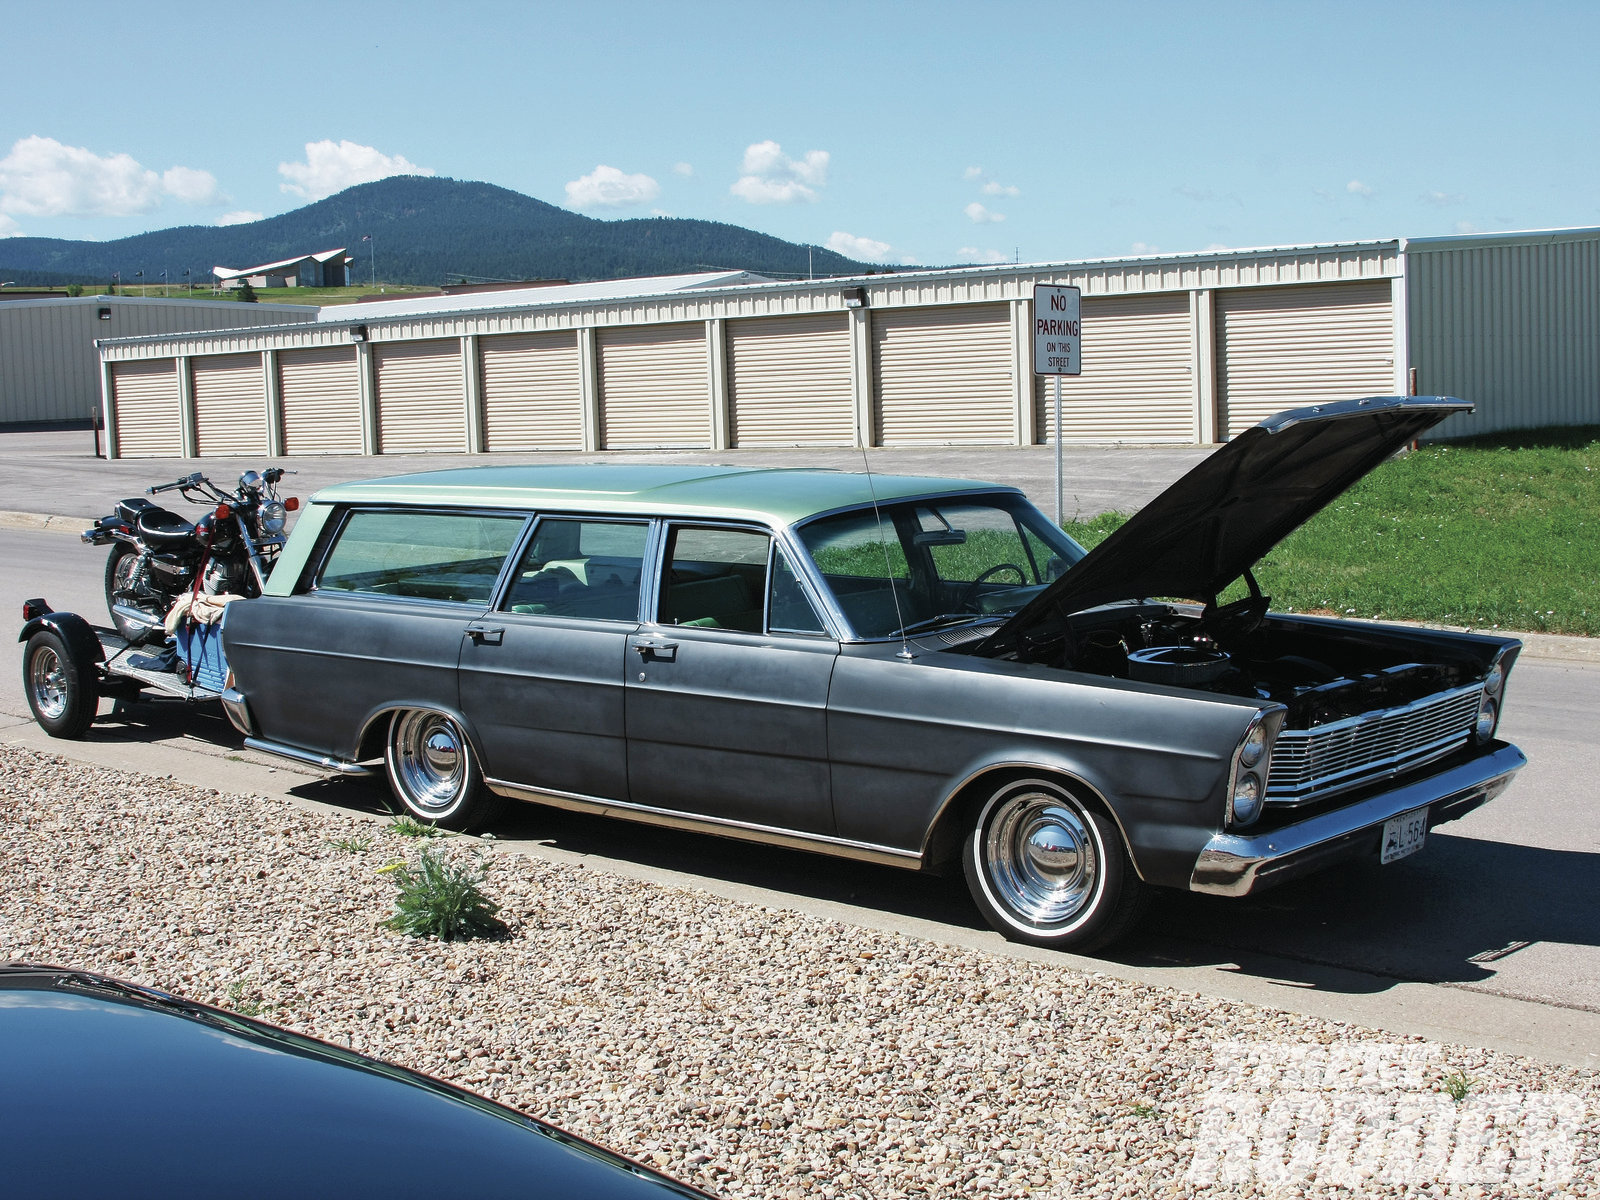 Ford Station Wagon #2